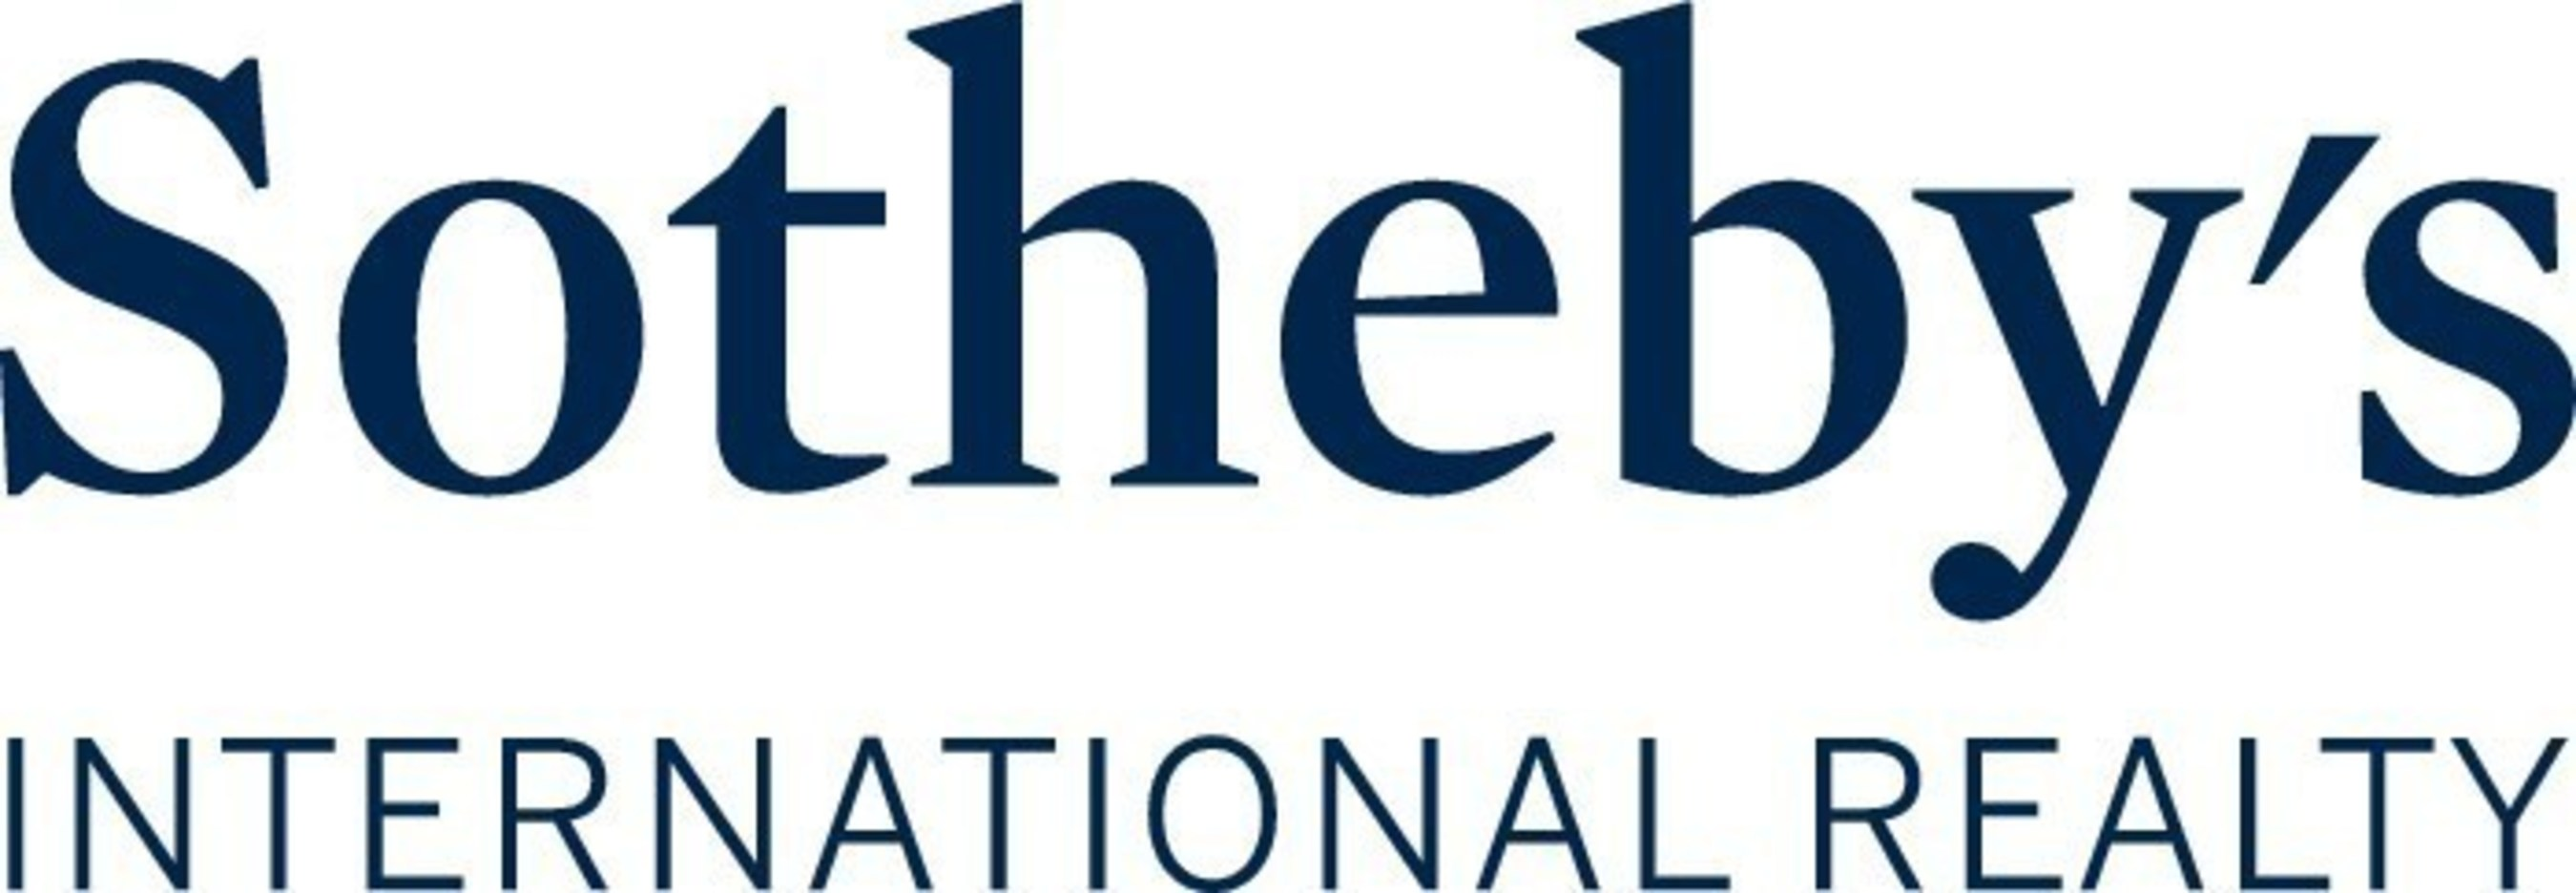 Sotheby's International Realty, Inc. Expands Presence in Manhattan with Acquisition of Fenwick Keats Real Estate